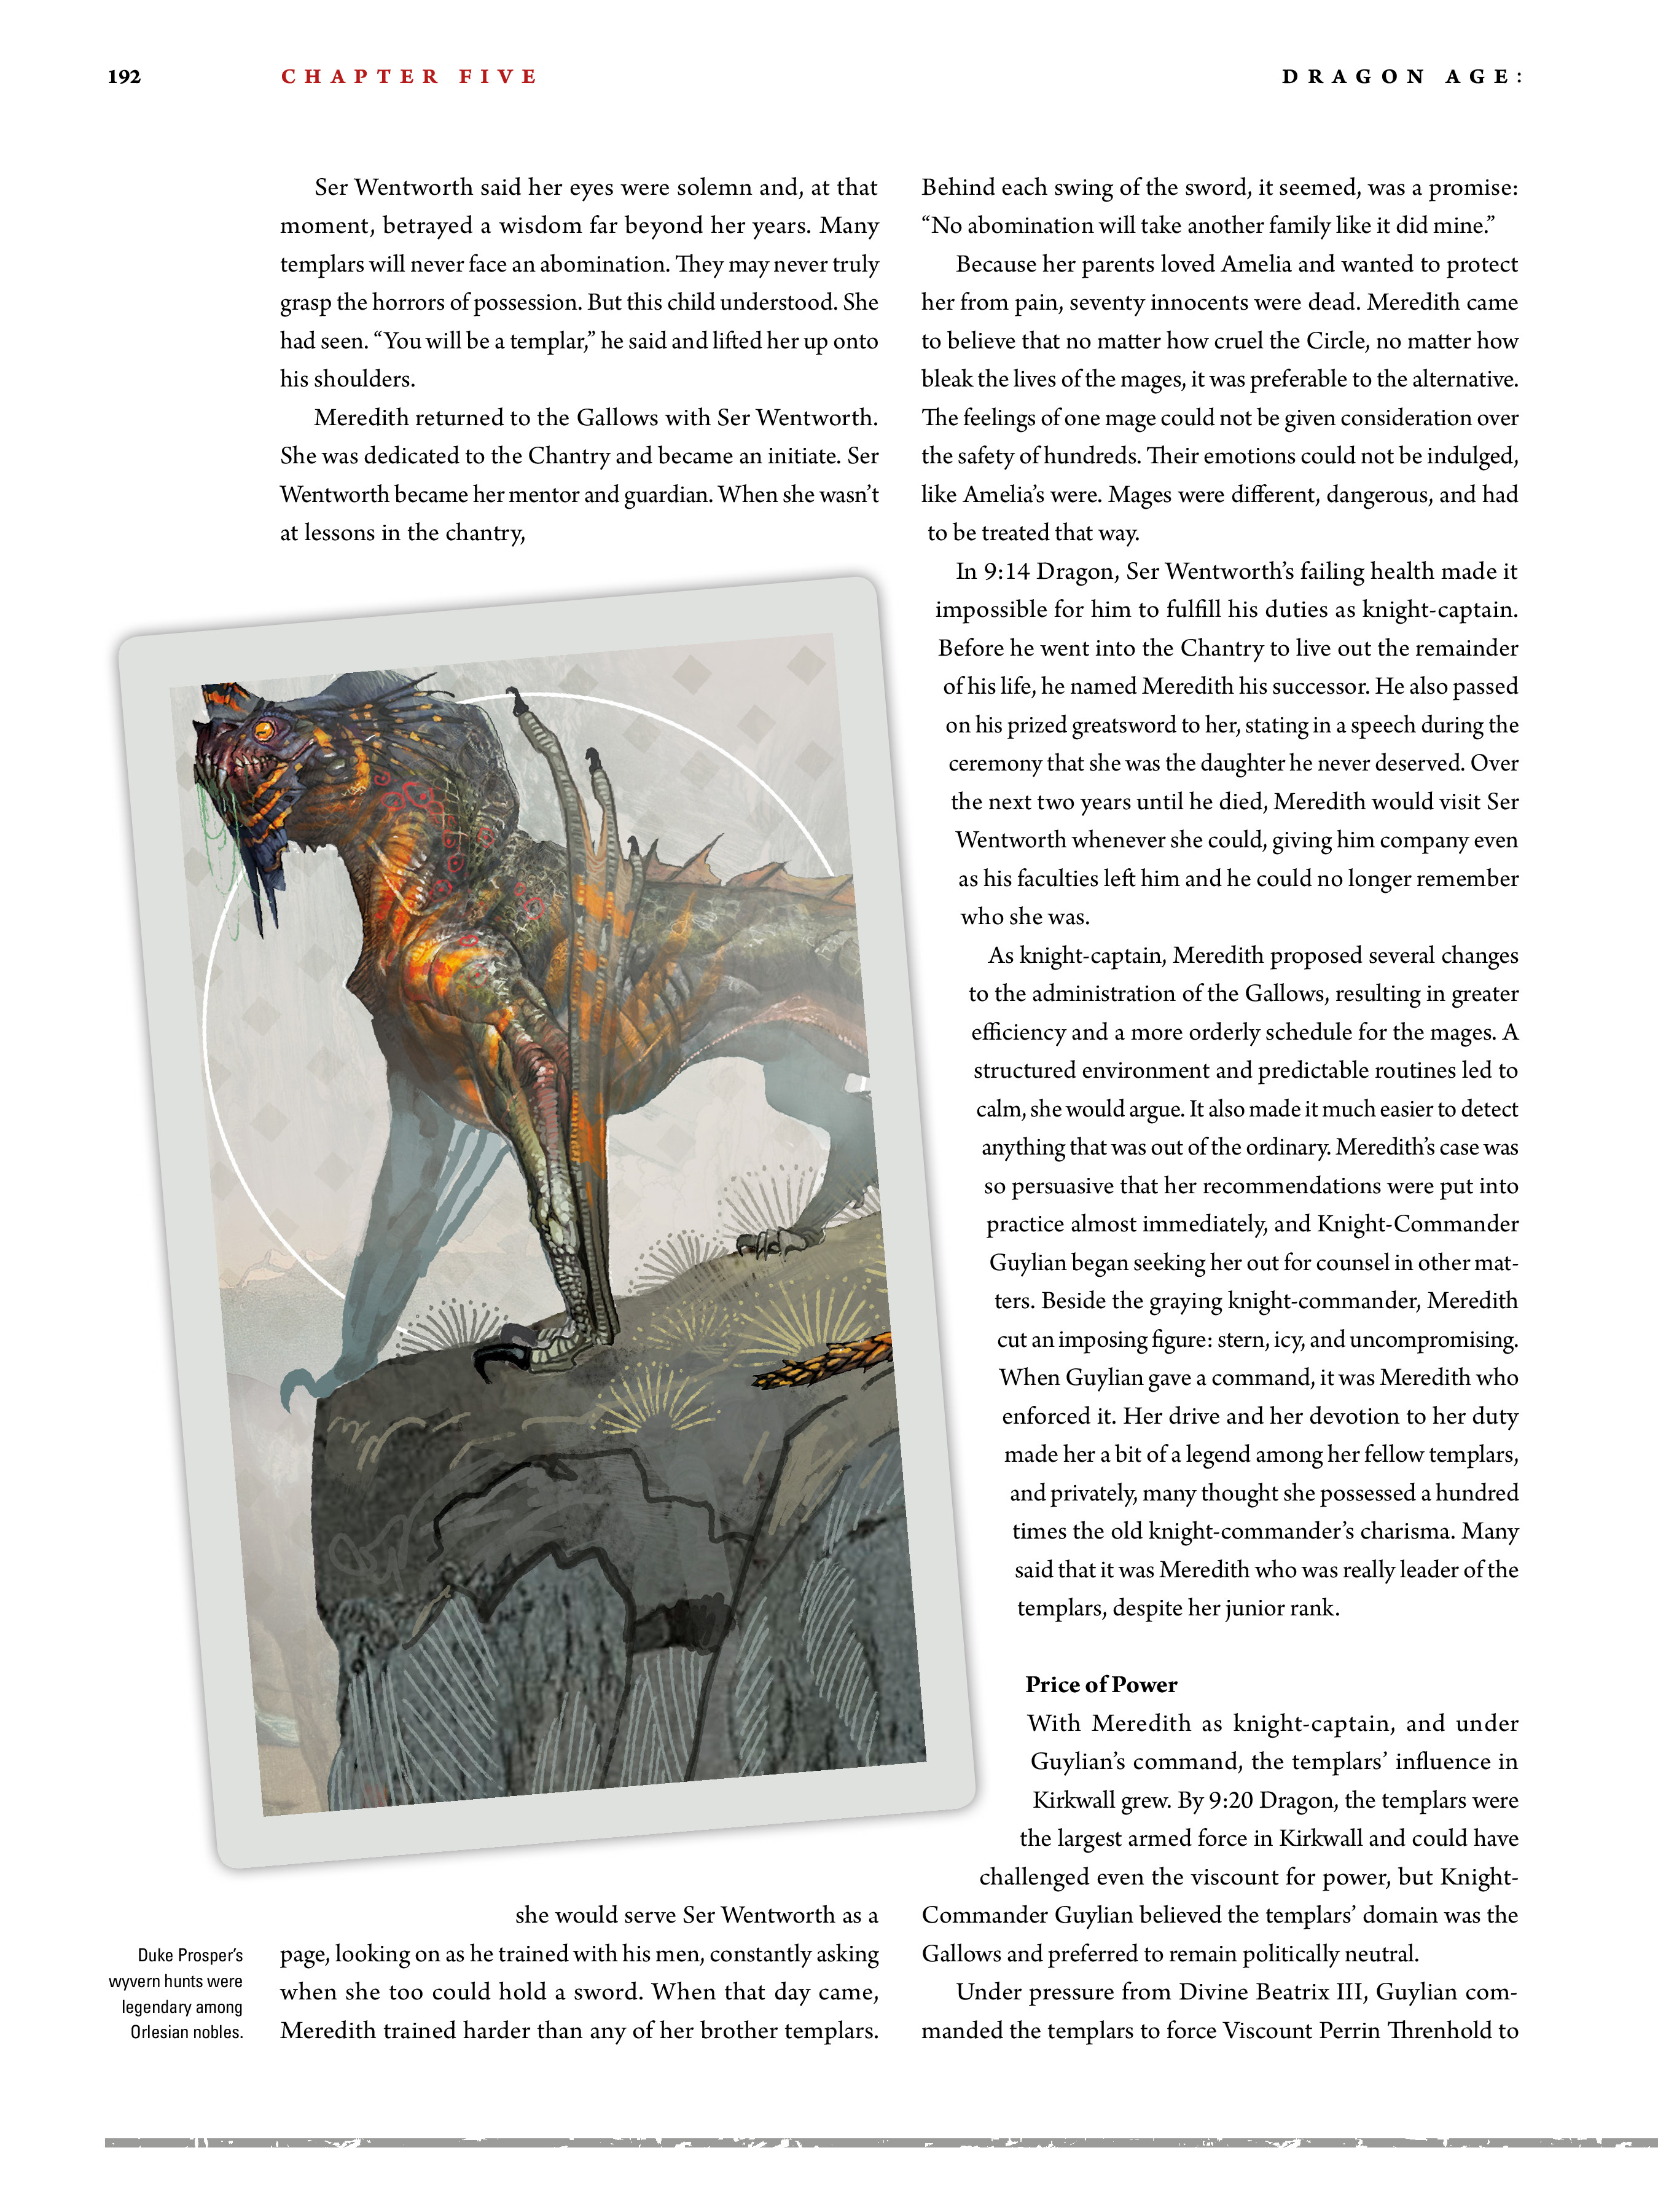 Read online Dragon Age: The World of Thedas comic -  Issue # TPB 2 - 187